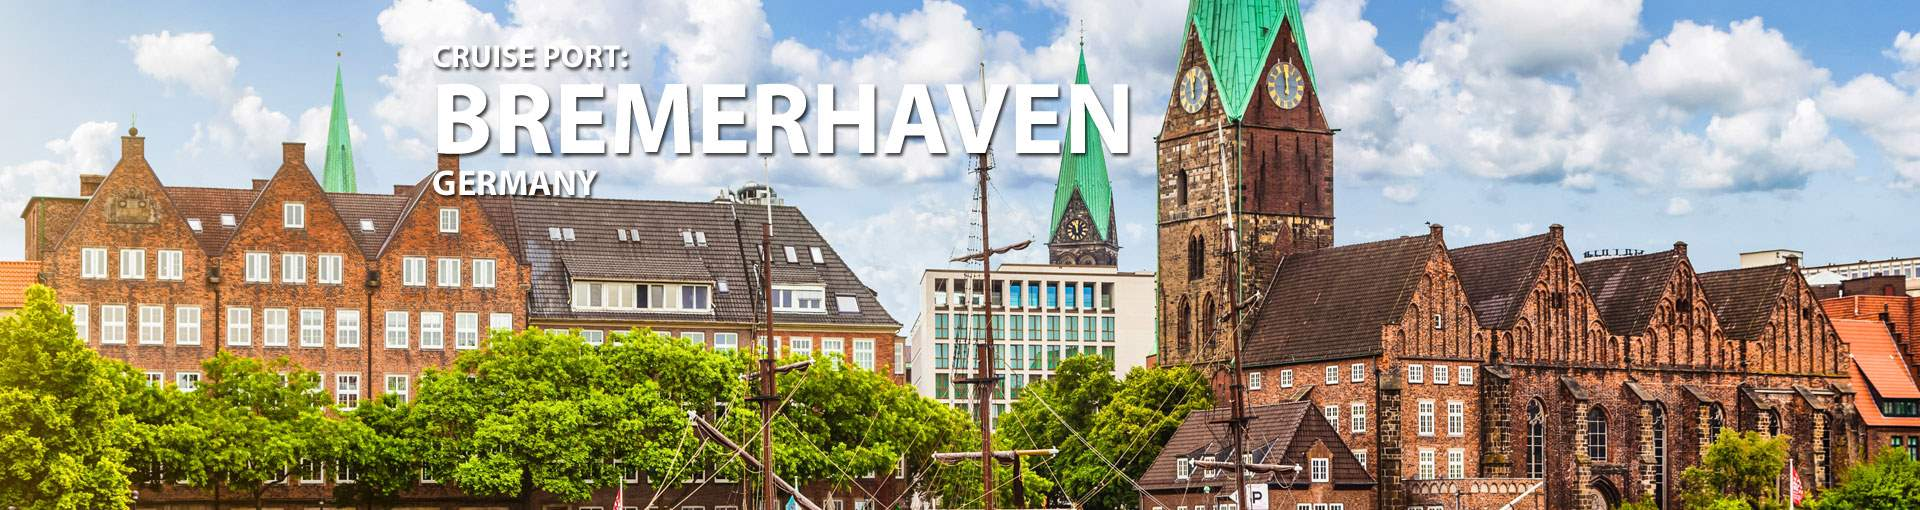 Cruises to Bremerhaven, Germany